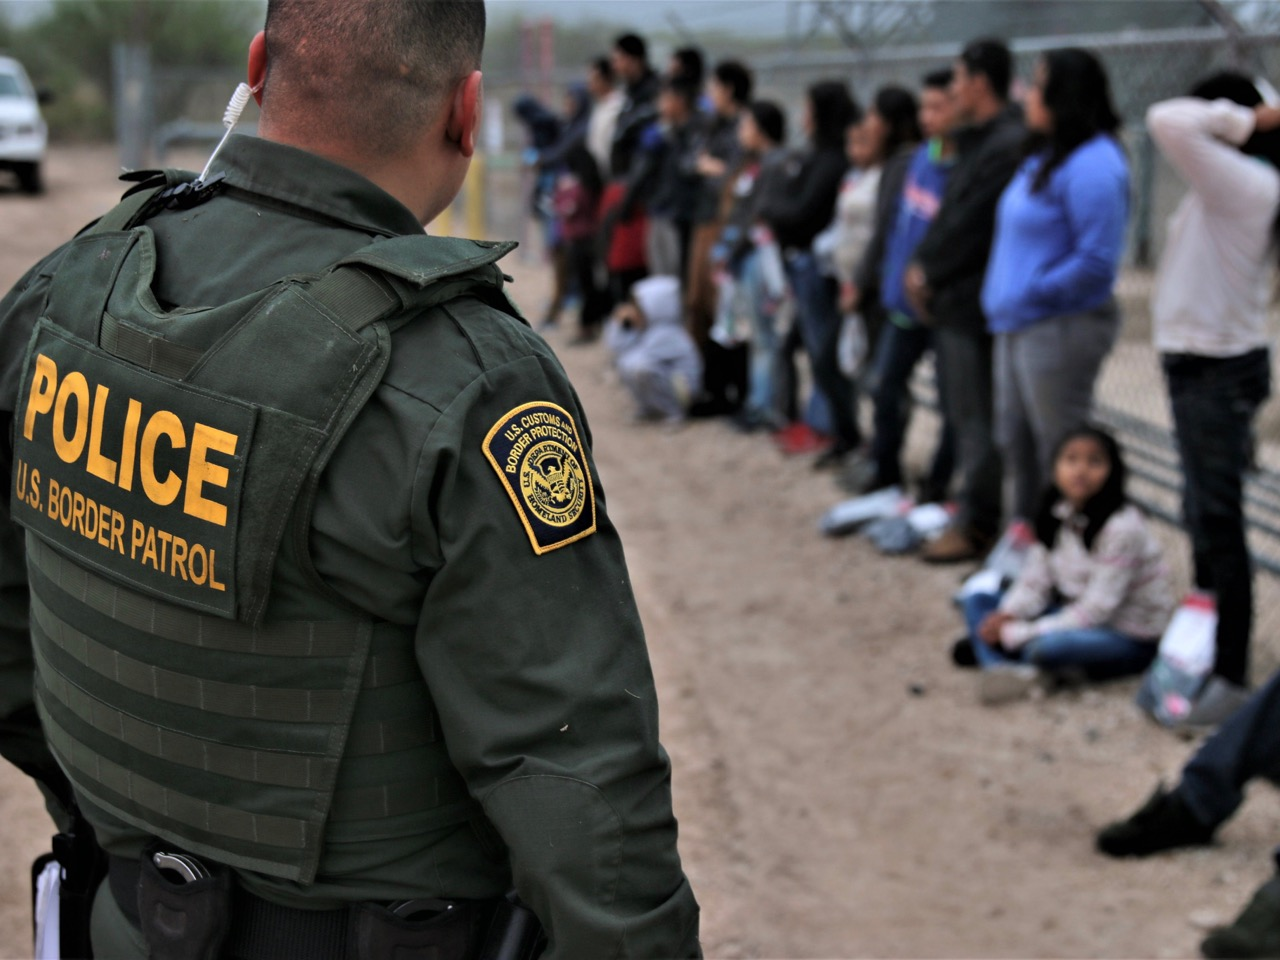 Rep. Markwayne Mullin: Migrants continue to cross the border in record numbers